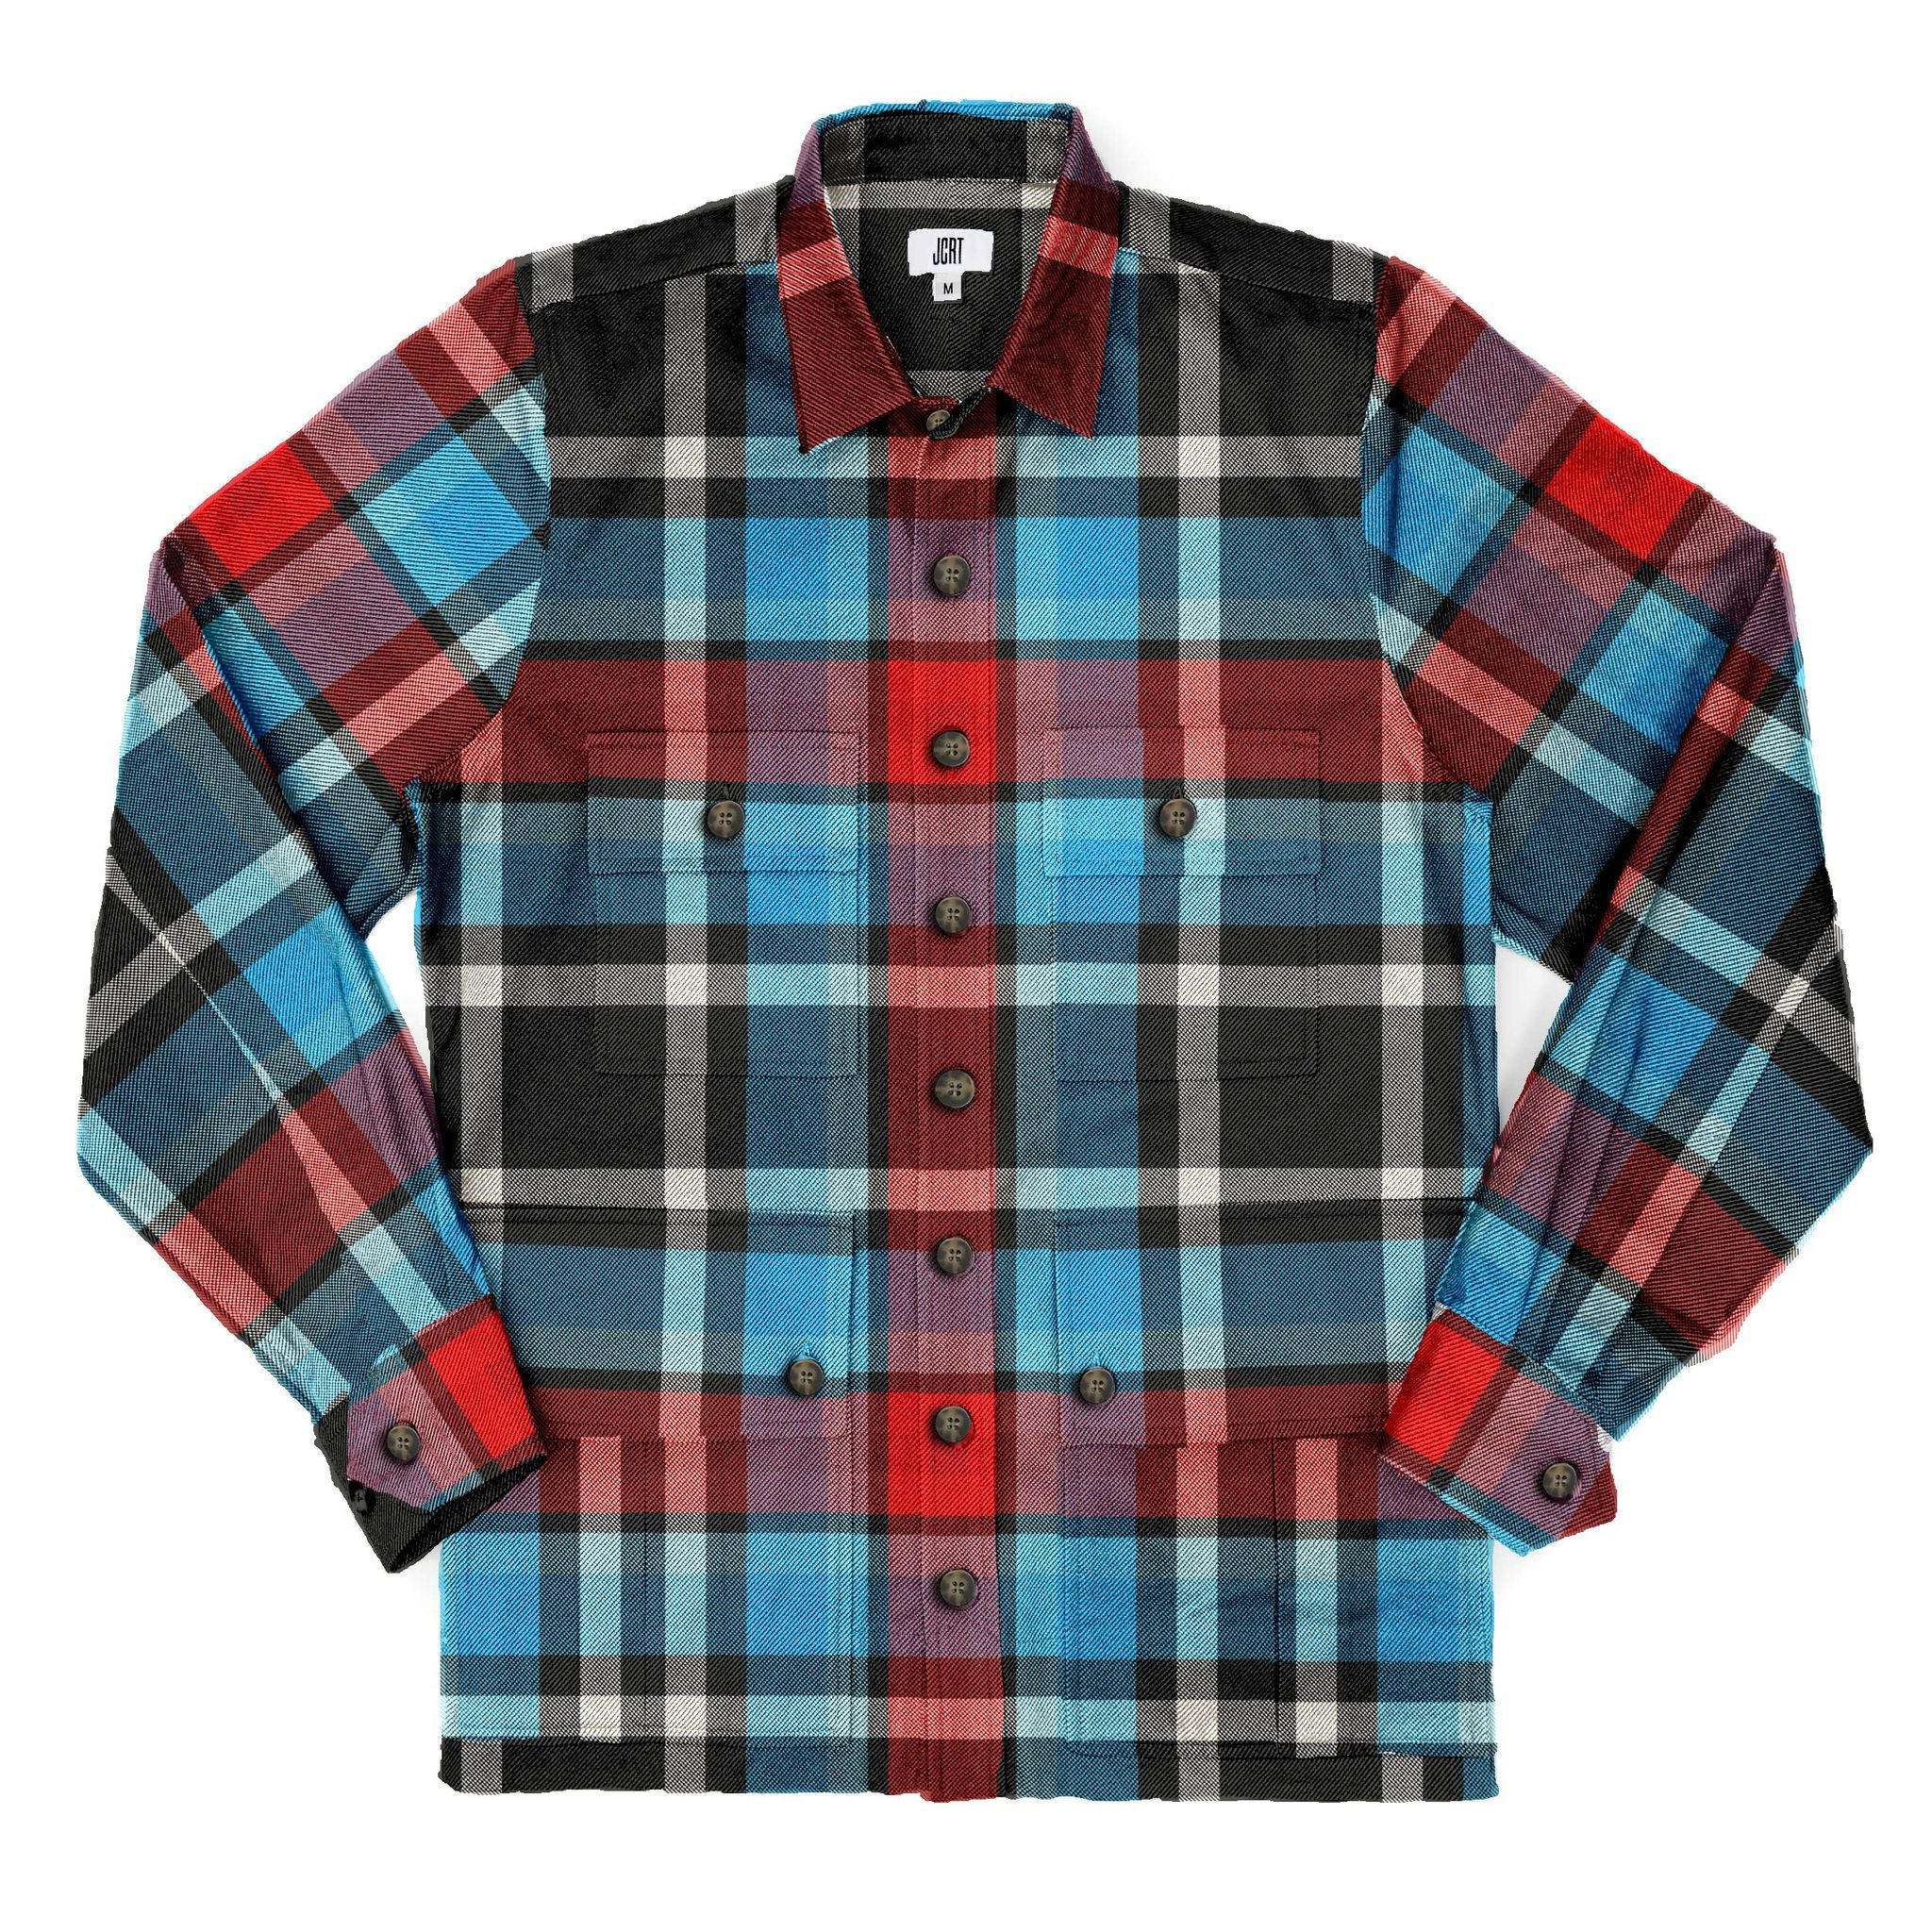 The Remain In Light Plaid Driving Jacket